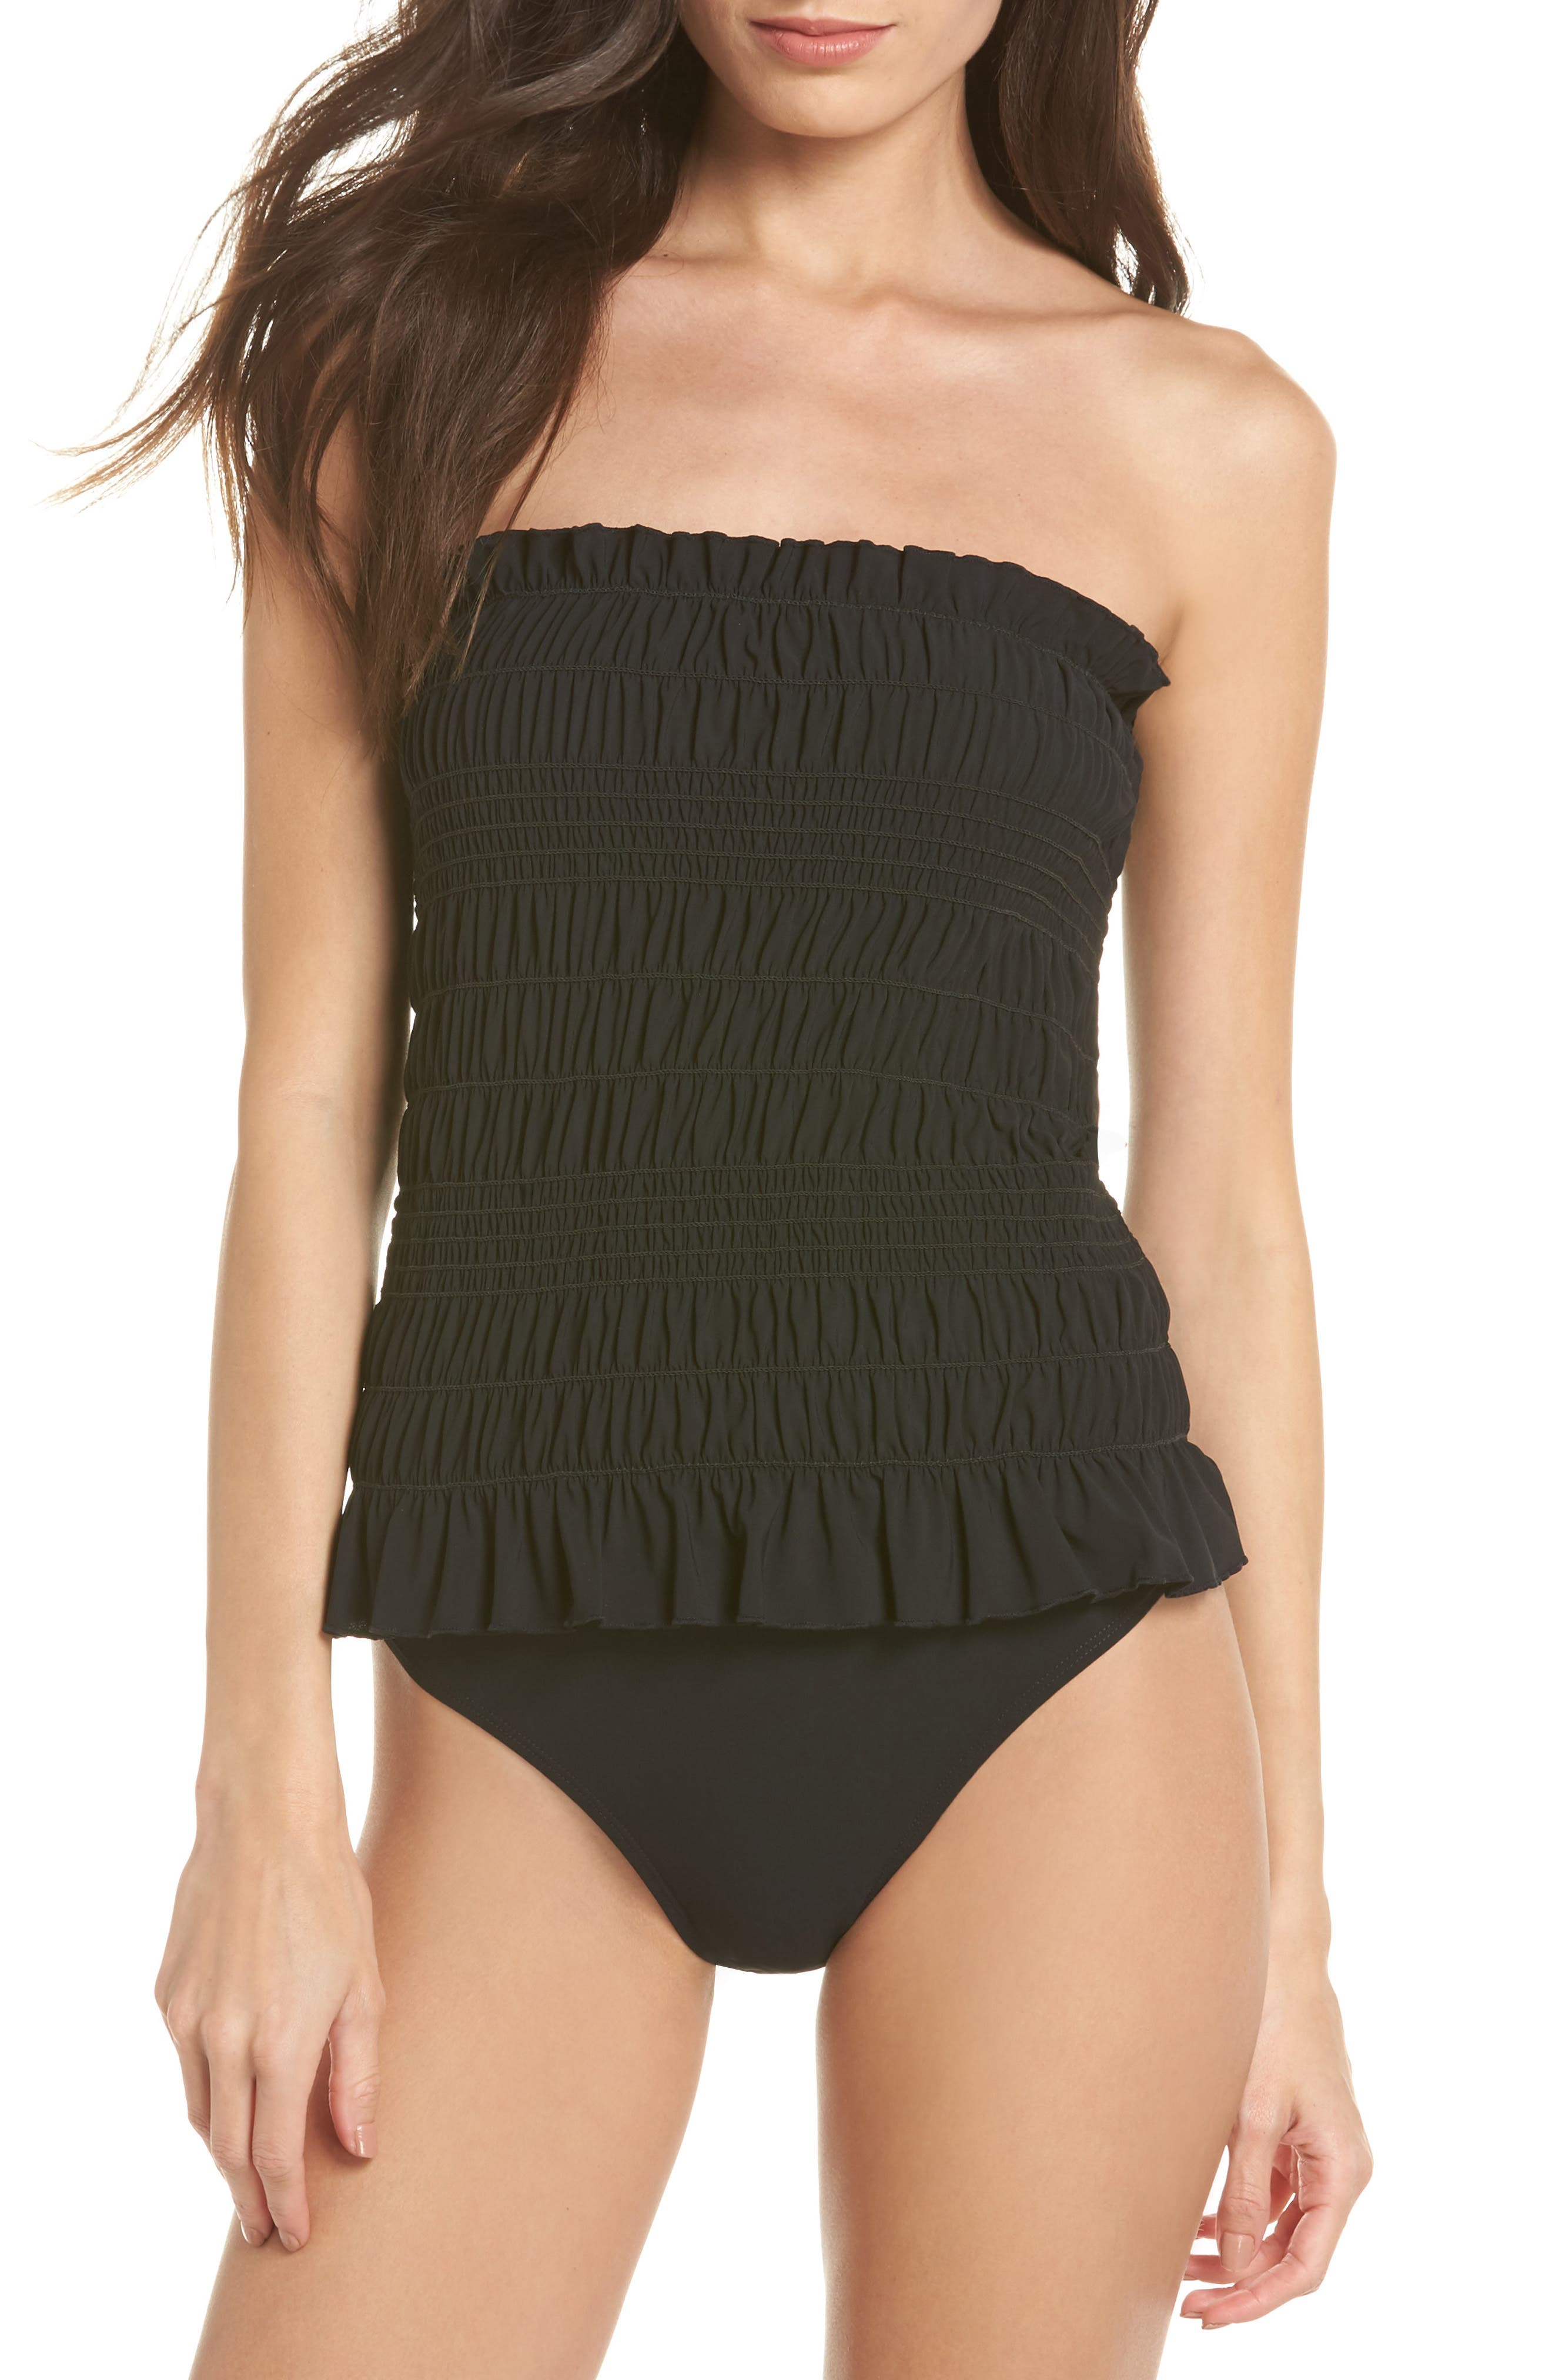 Costa Smocked One-Piece Swimsuit,                             Main thumbnail 1, color,                             Black / Black